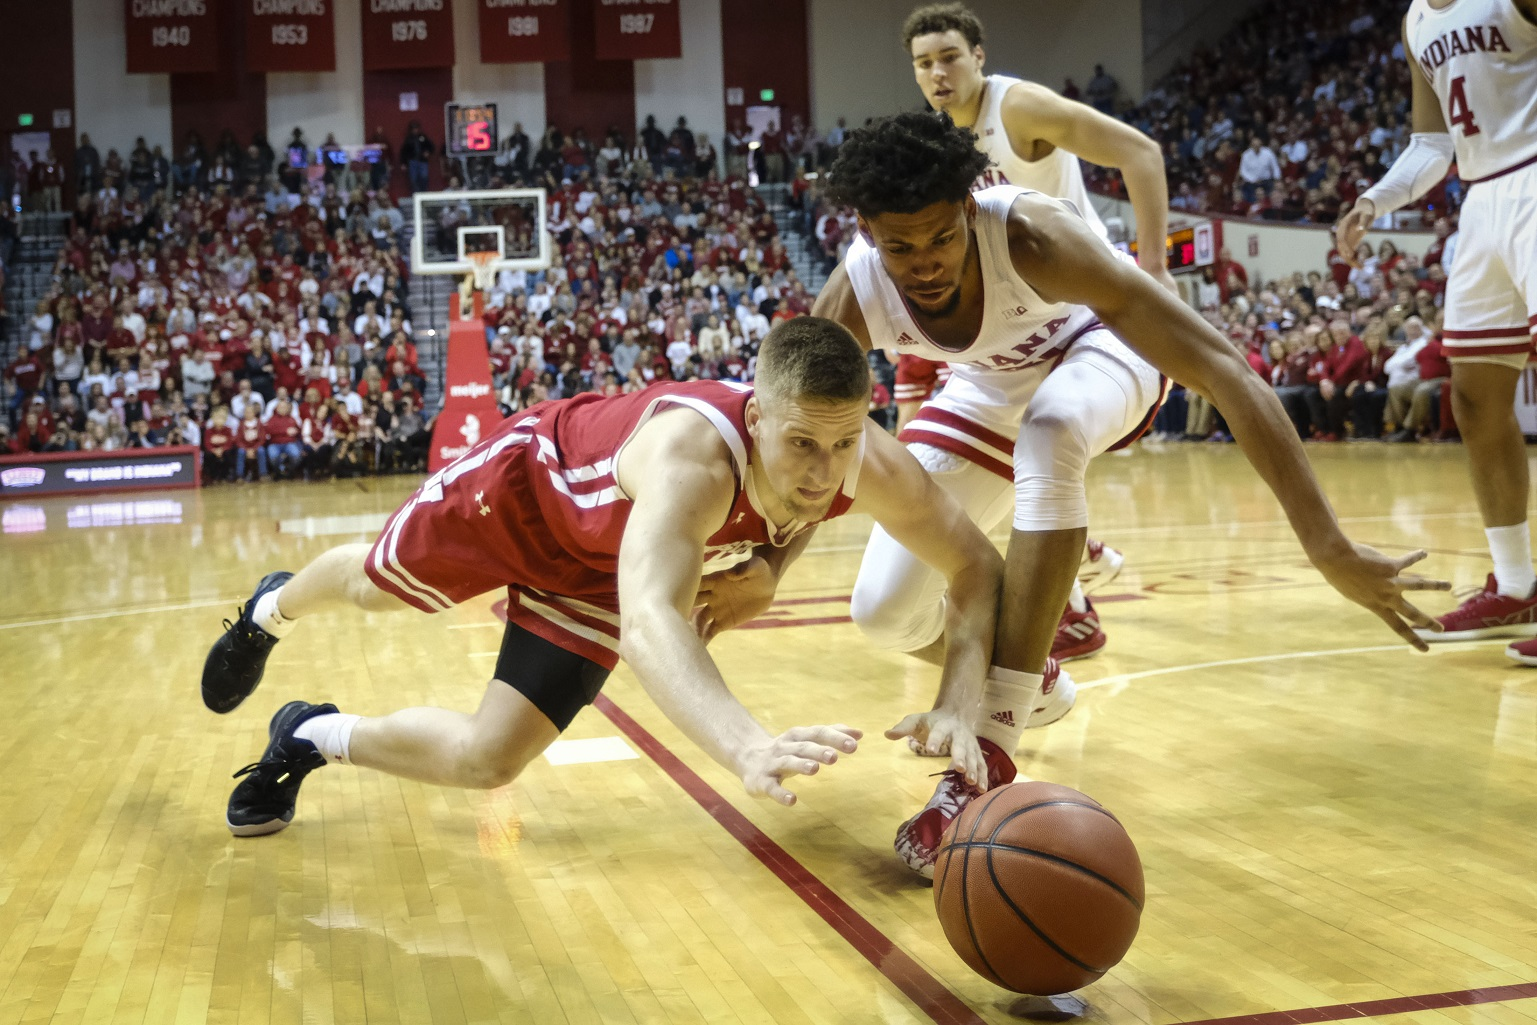 Badgers root to share Big 10 title to get No. 1 seed, will play Friday against either Michigan or Rutgers